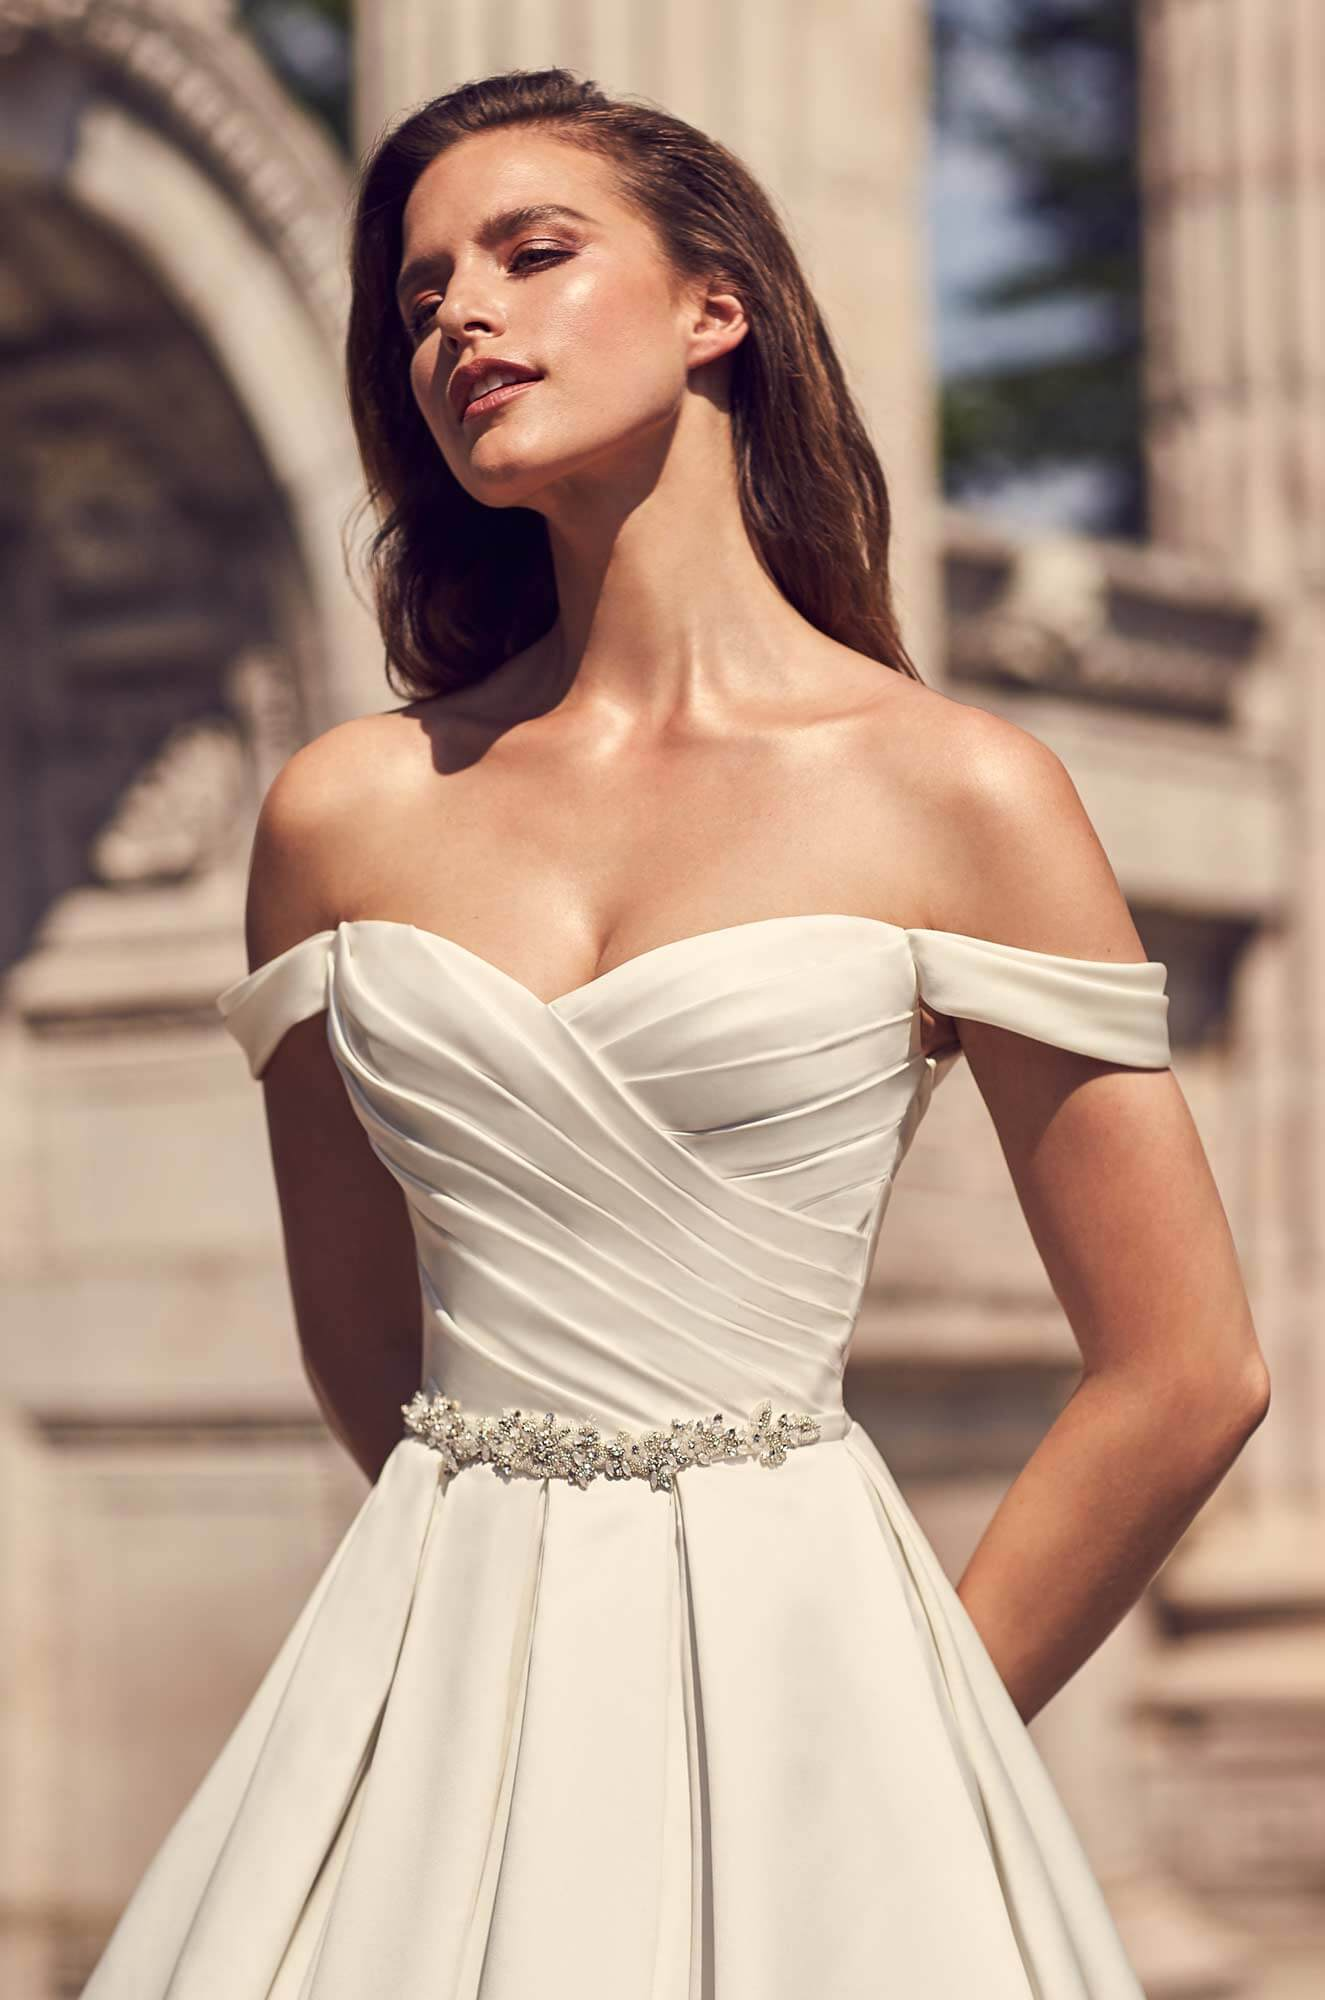 Wedding Dress | The Mustcard